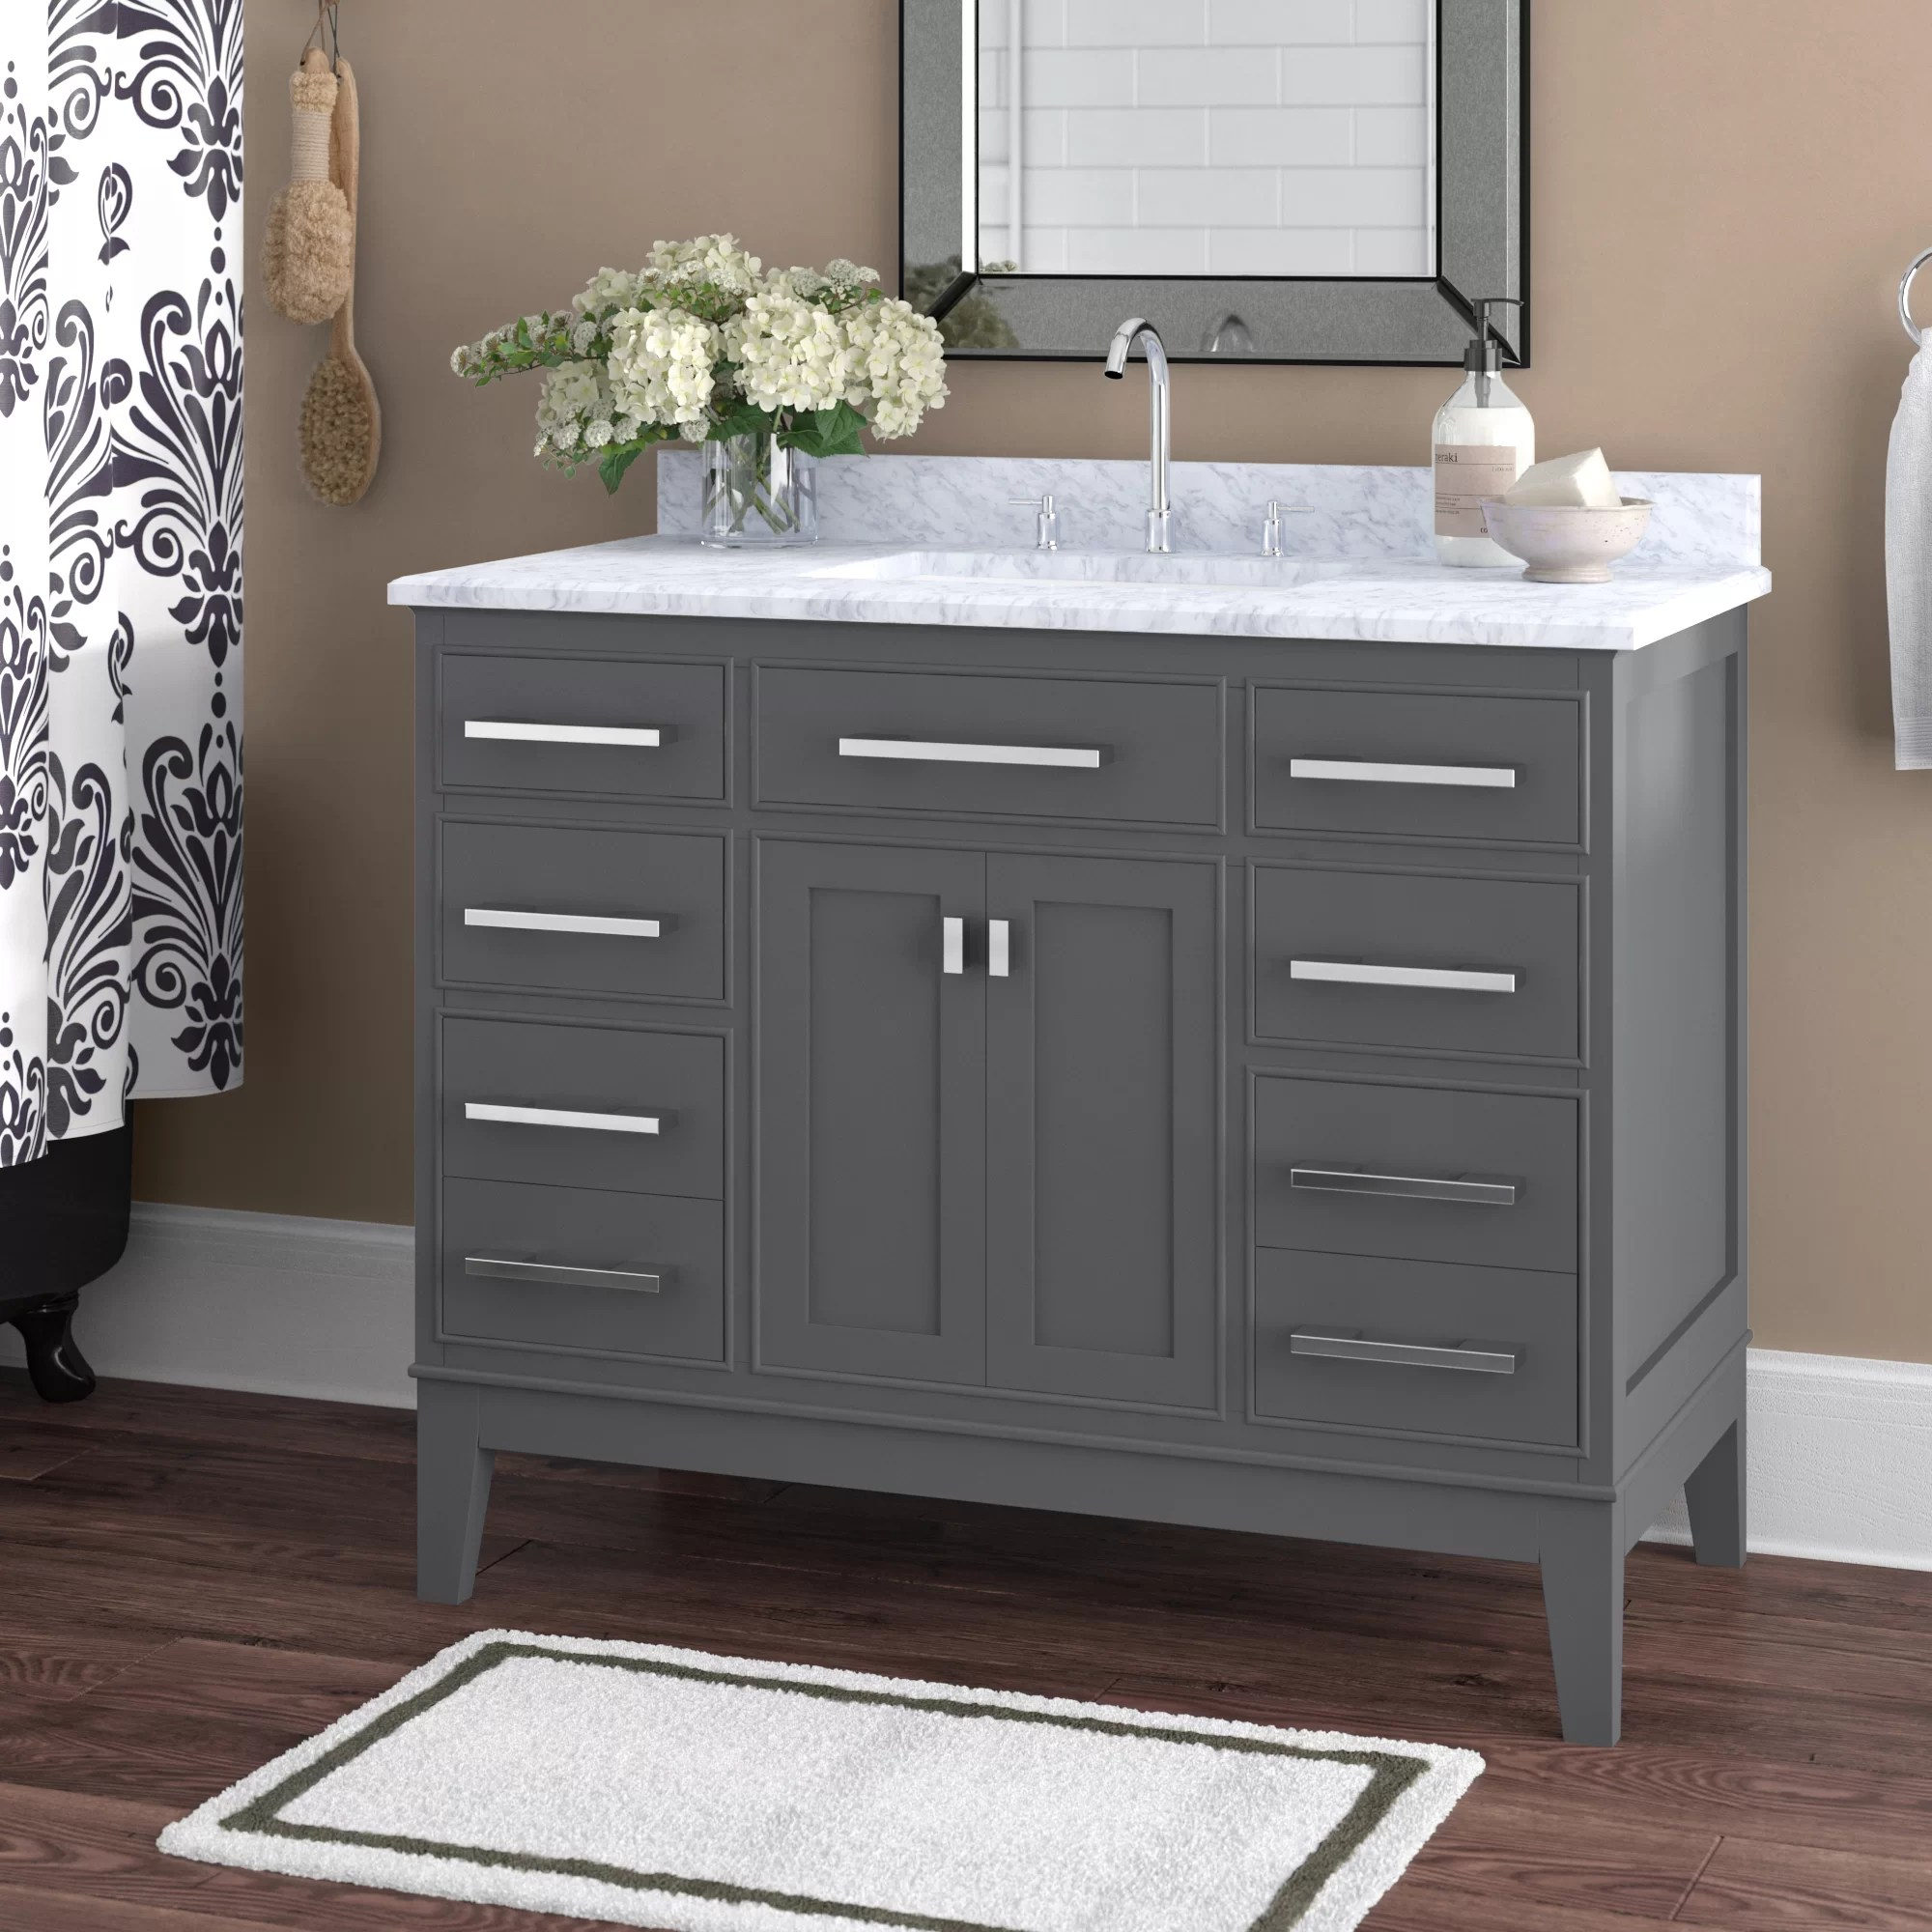 Charlton Home Arminta 42 Single Bathroom Vanity Set Reviews Wayfair